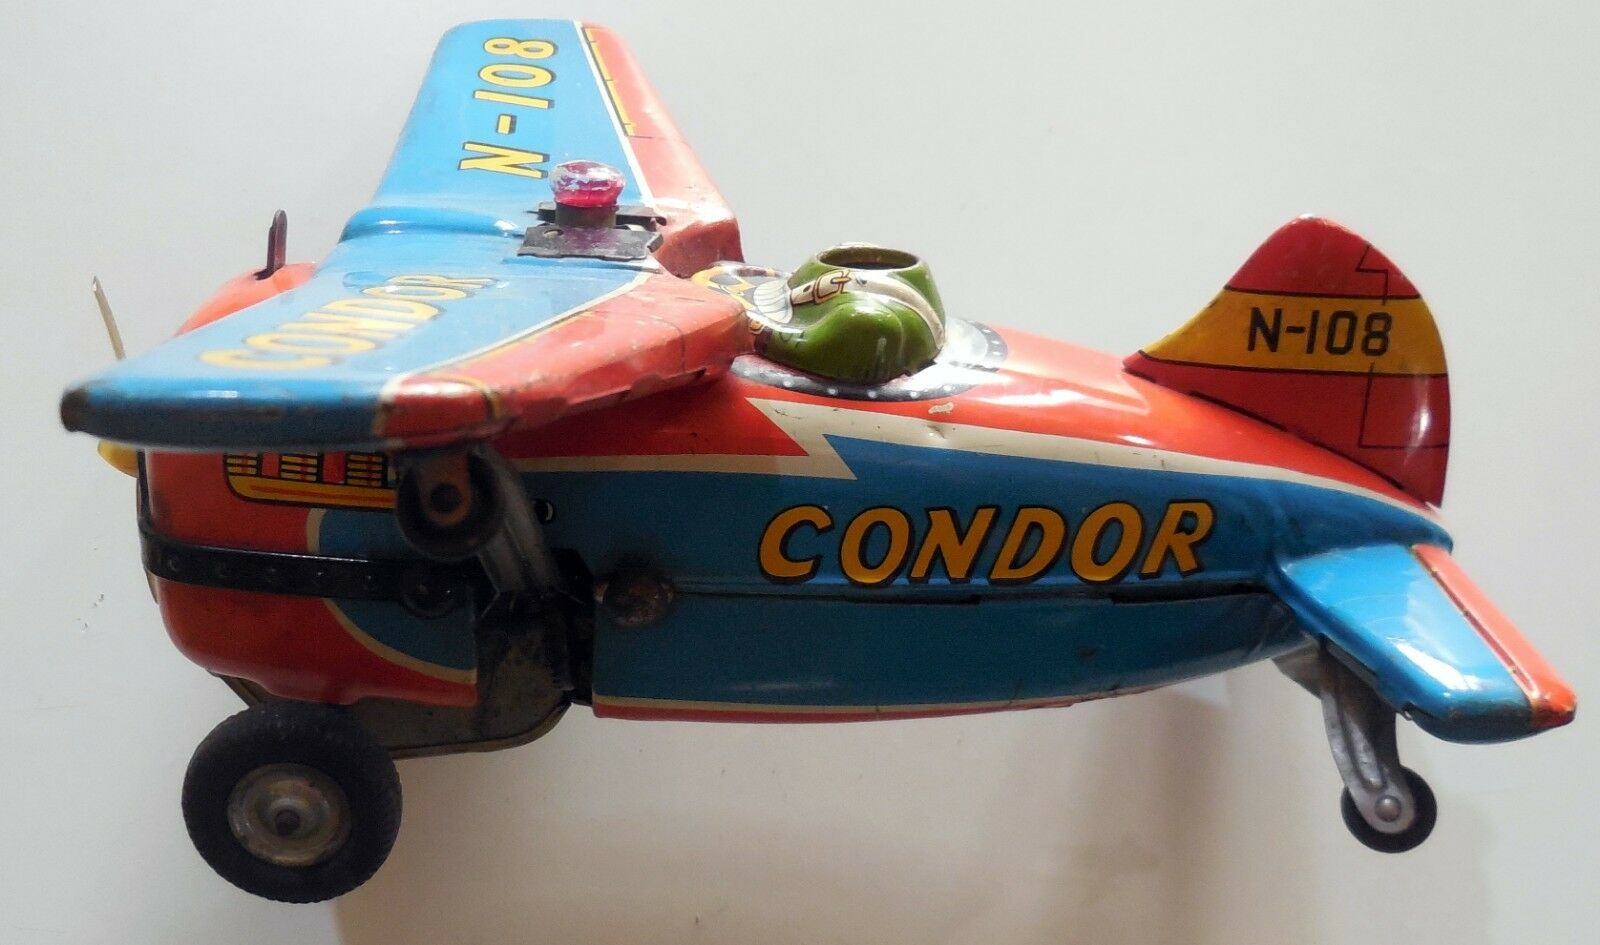 VINTAGE TIN TOY AIRPLANE CONDOR N-108 MODERN TOYS JAPAN JAPAN JAPAN 1960s battery operated be0818